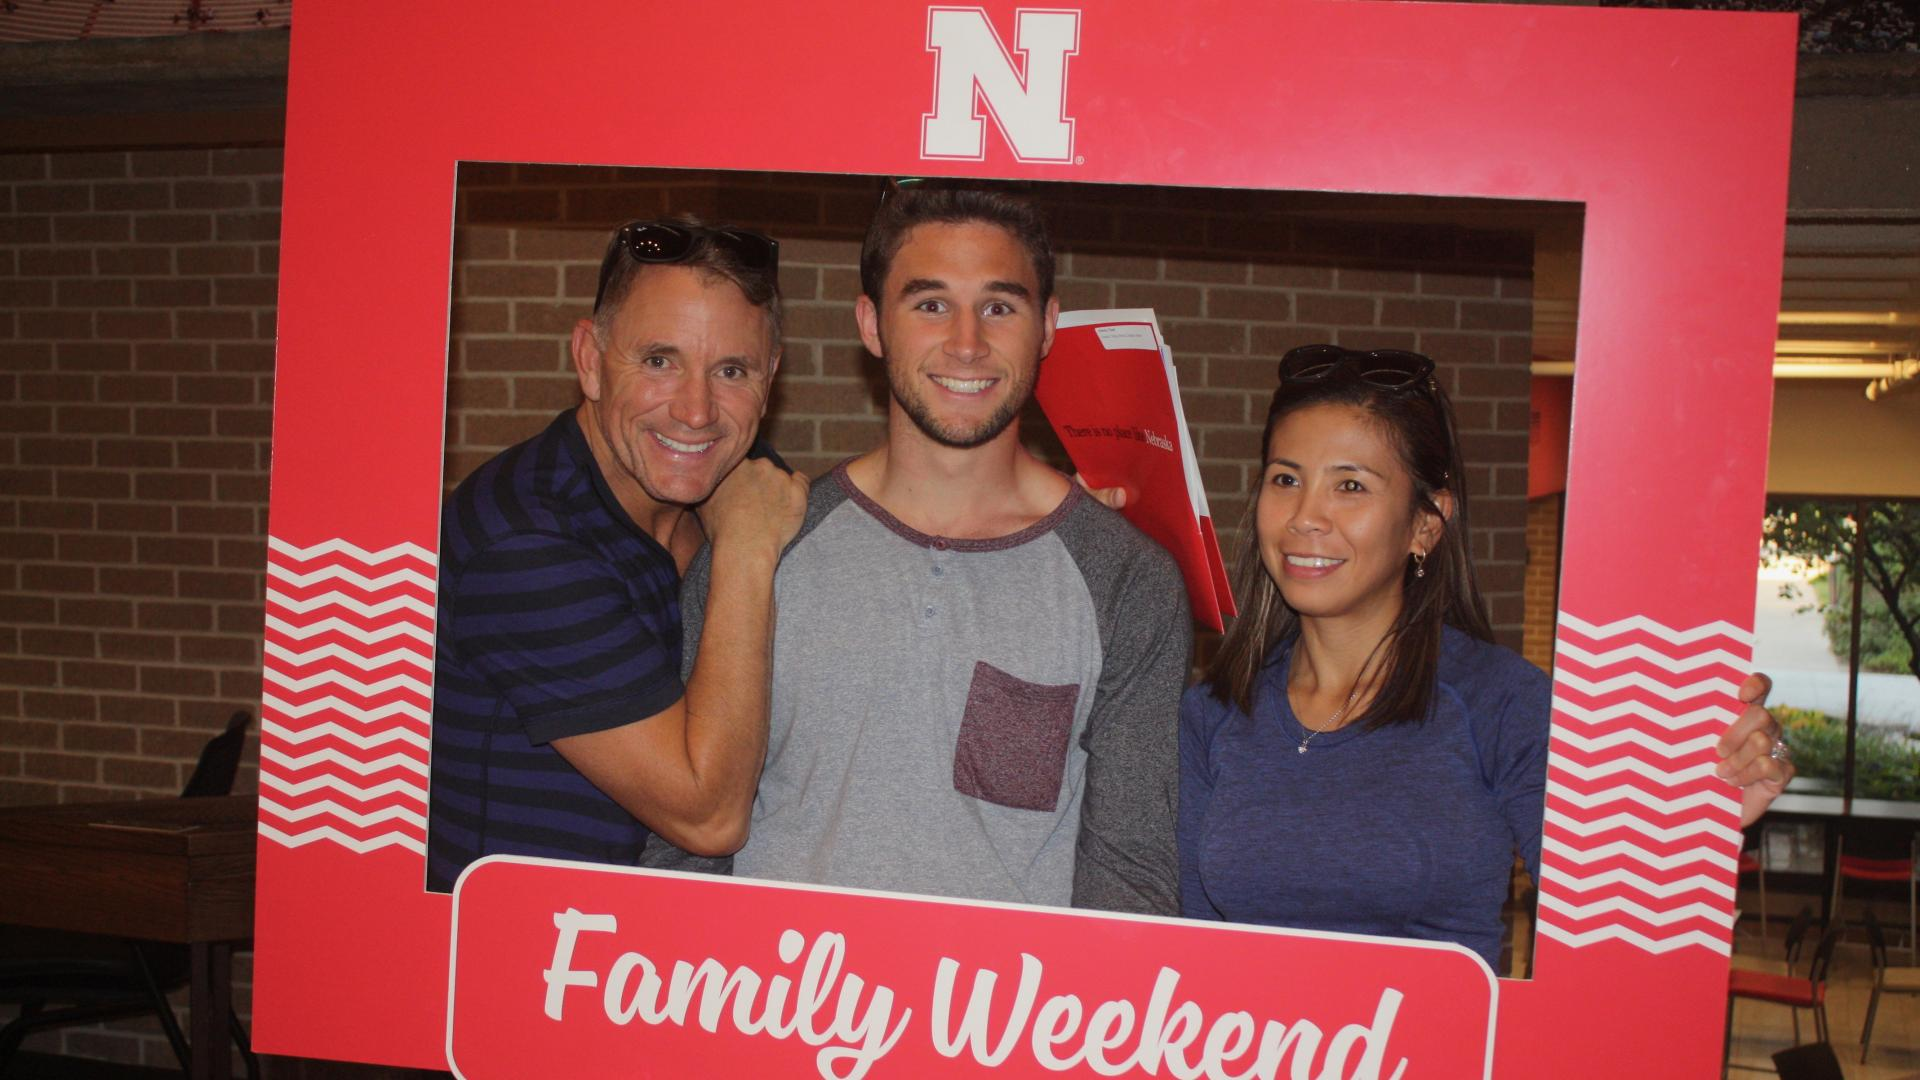 Family Weekend at the University of Nebraska-Lincoln